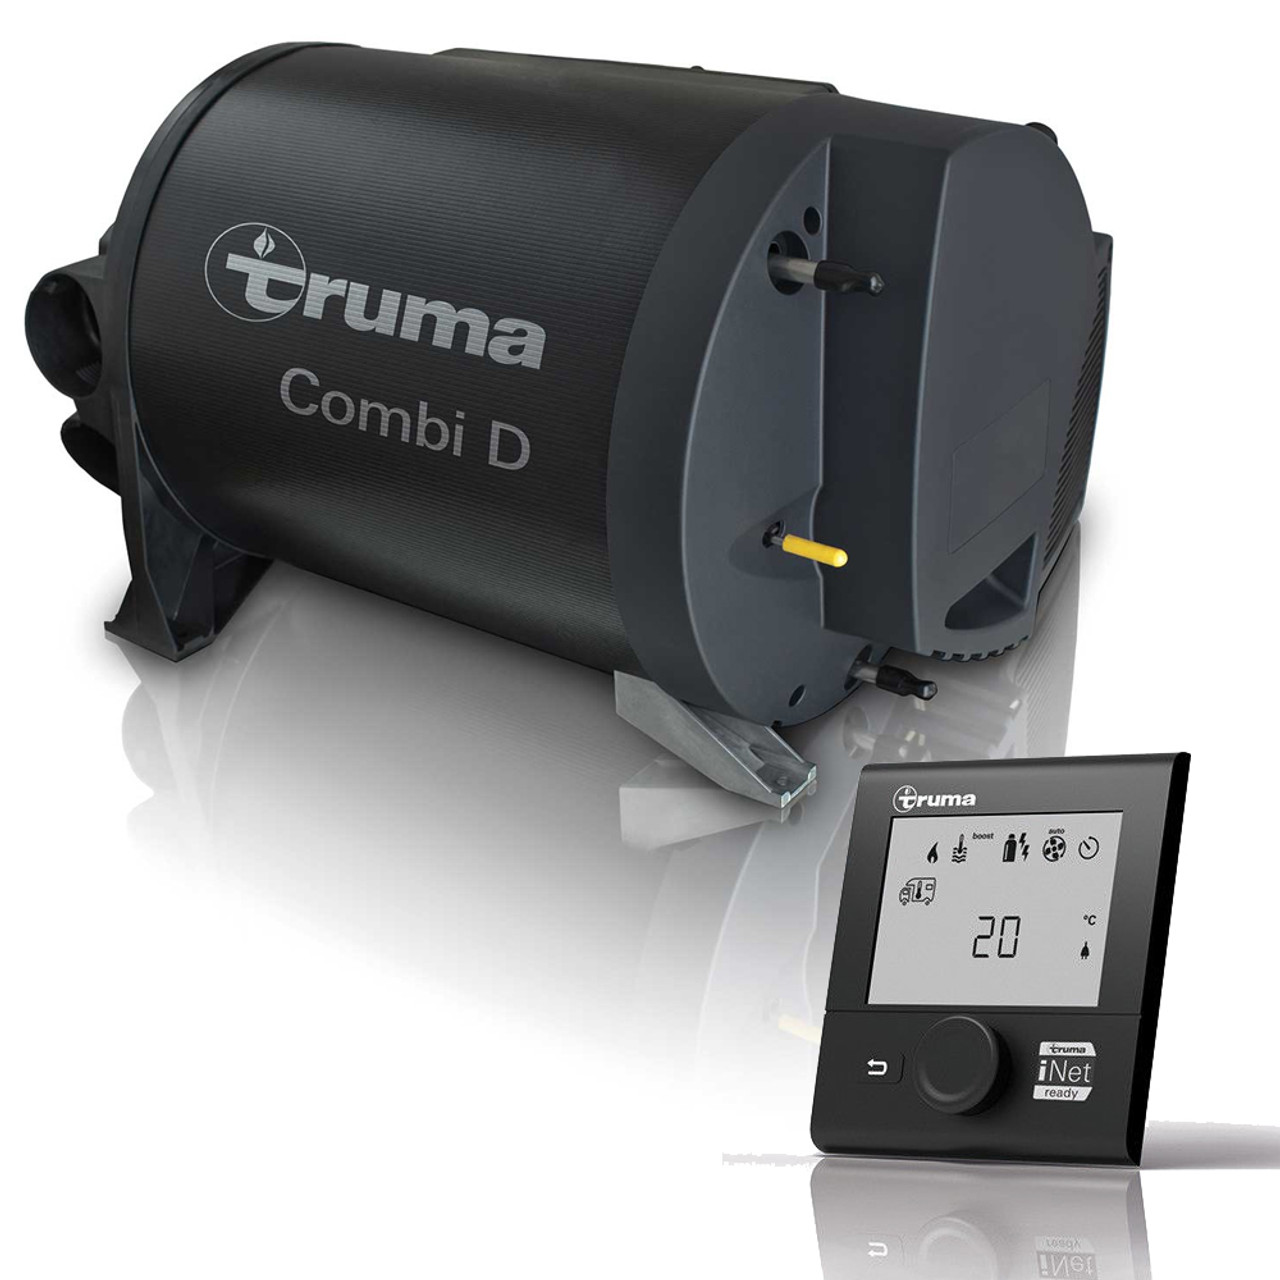 The Combi D6E complete kit from Truma includes all the required kit and assembly for installation of the water and space heater unit itself.